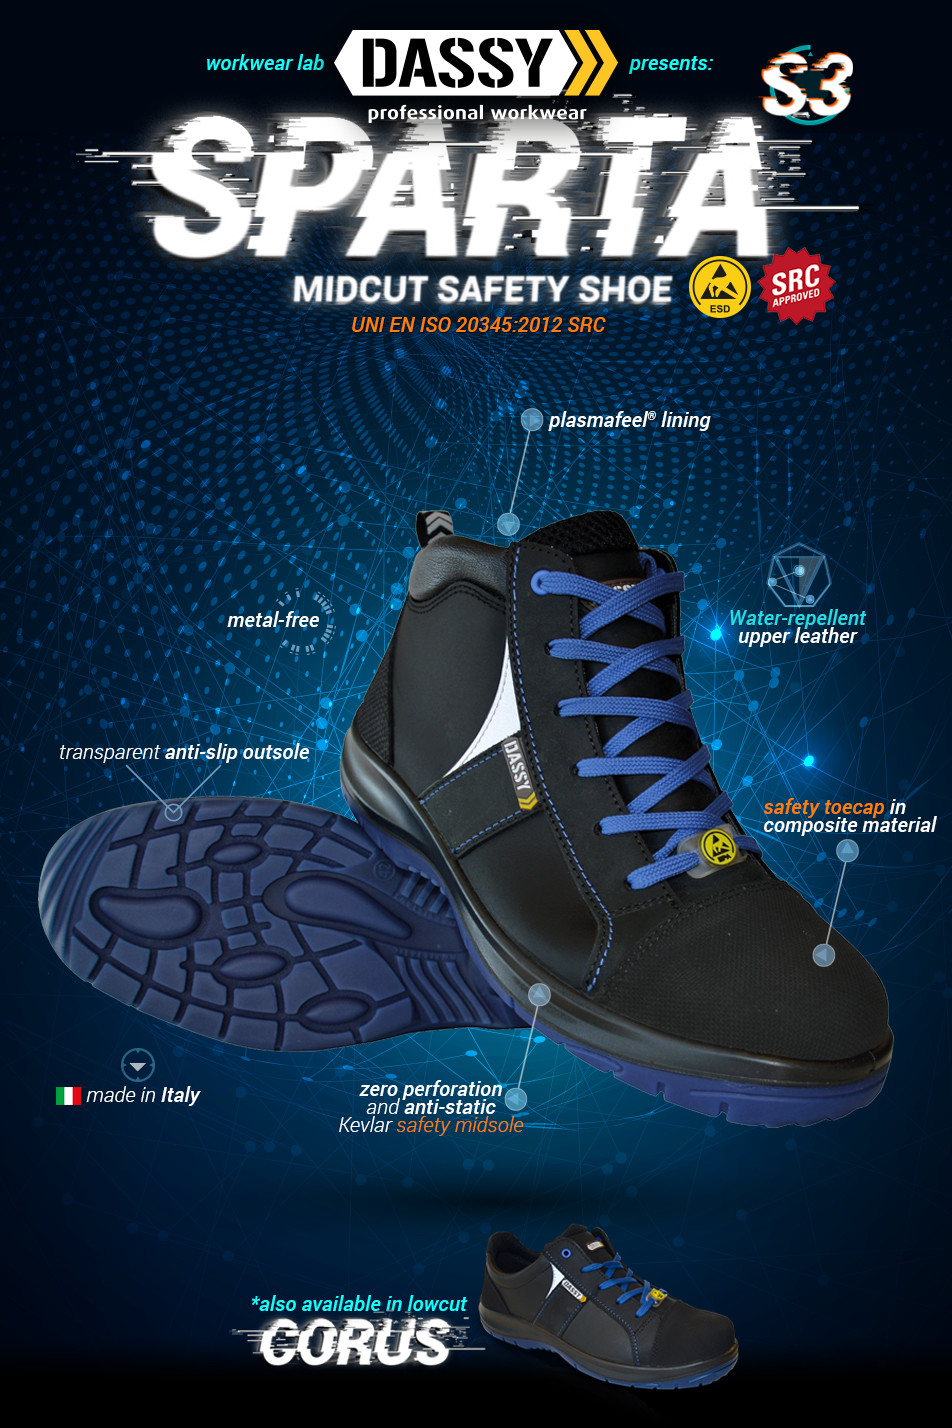 Dassy Midcut Safety Shoe Sparta S3